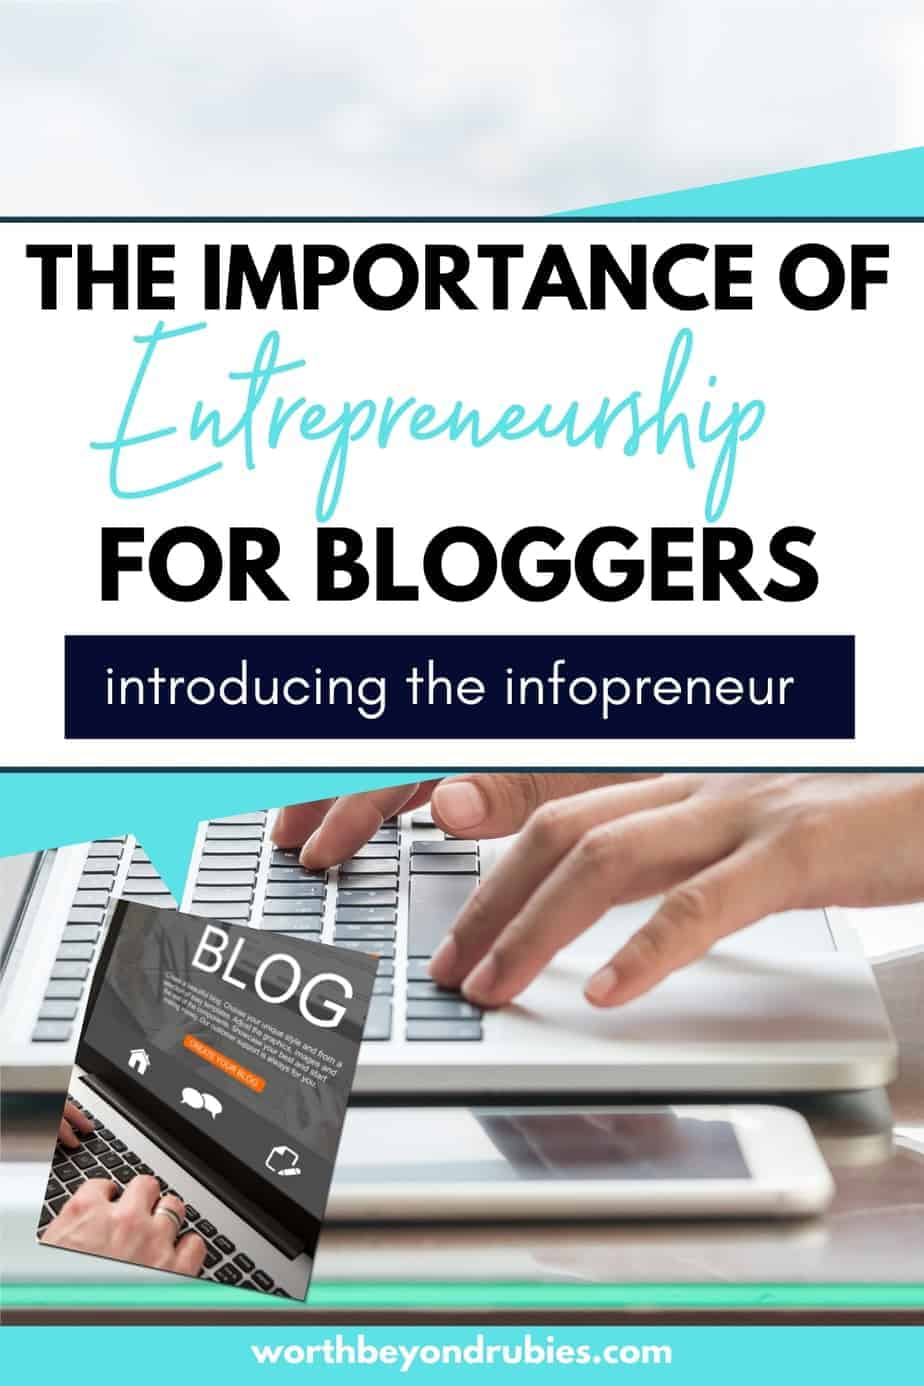 The Importance of Entrepreneurship for Bloggers - Infopreneur - an image of hands typing on a laptop